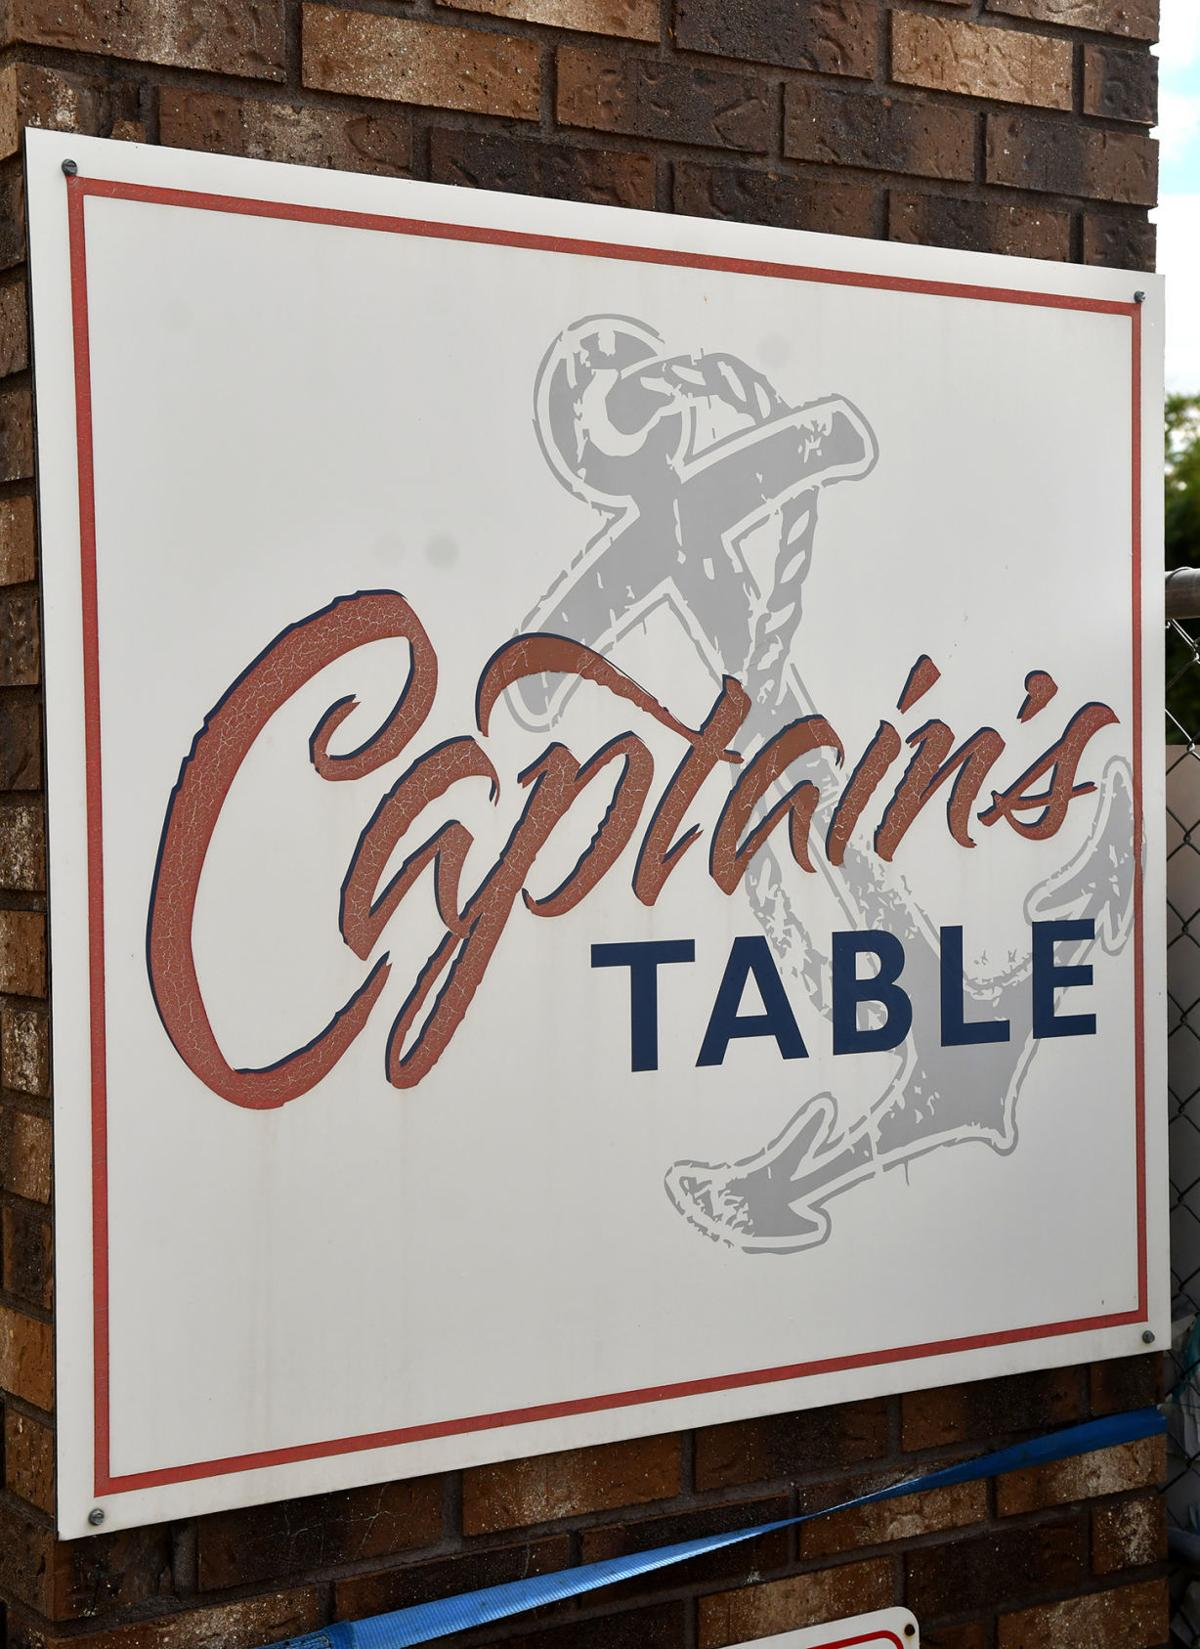 Ground breaking for the new Captain's Table Restaurant in Moline